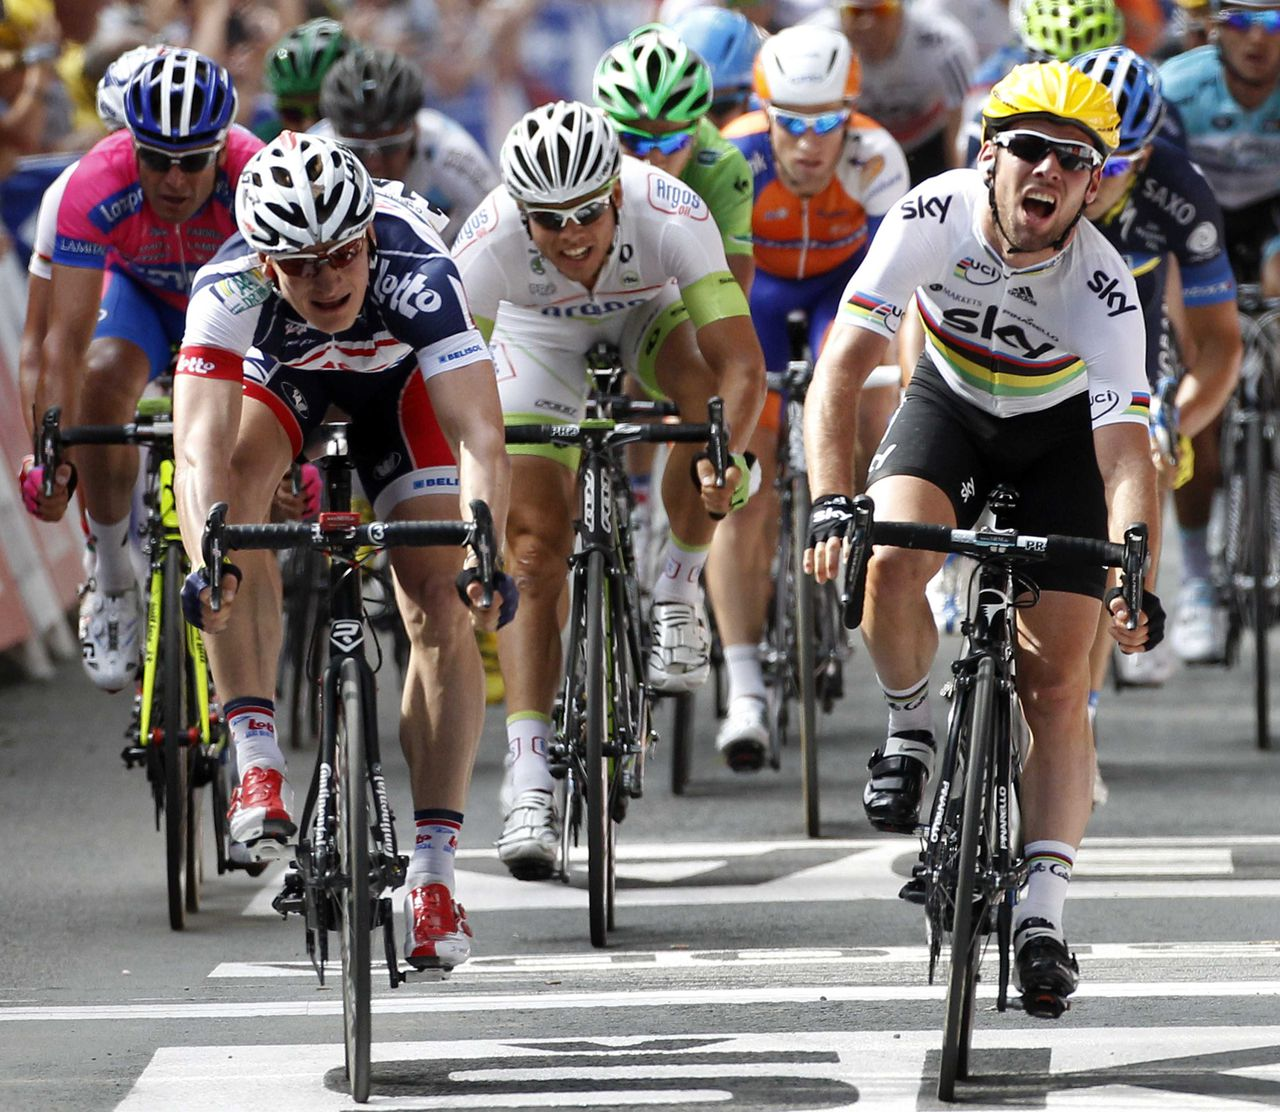 Sky Procycling rider Mark Cavendish of Britain (R) sprints ahead of Lotto-Belissol Team rider Andre Greipel (L) as he wins the second stage of the 99th Tour de France cycling race between Vise and Tournai, July 2, 2012. REUTERS/Jean-Paul Pelissier (BELGIUM - Tags: SPORT CYCLING)